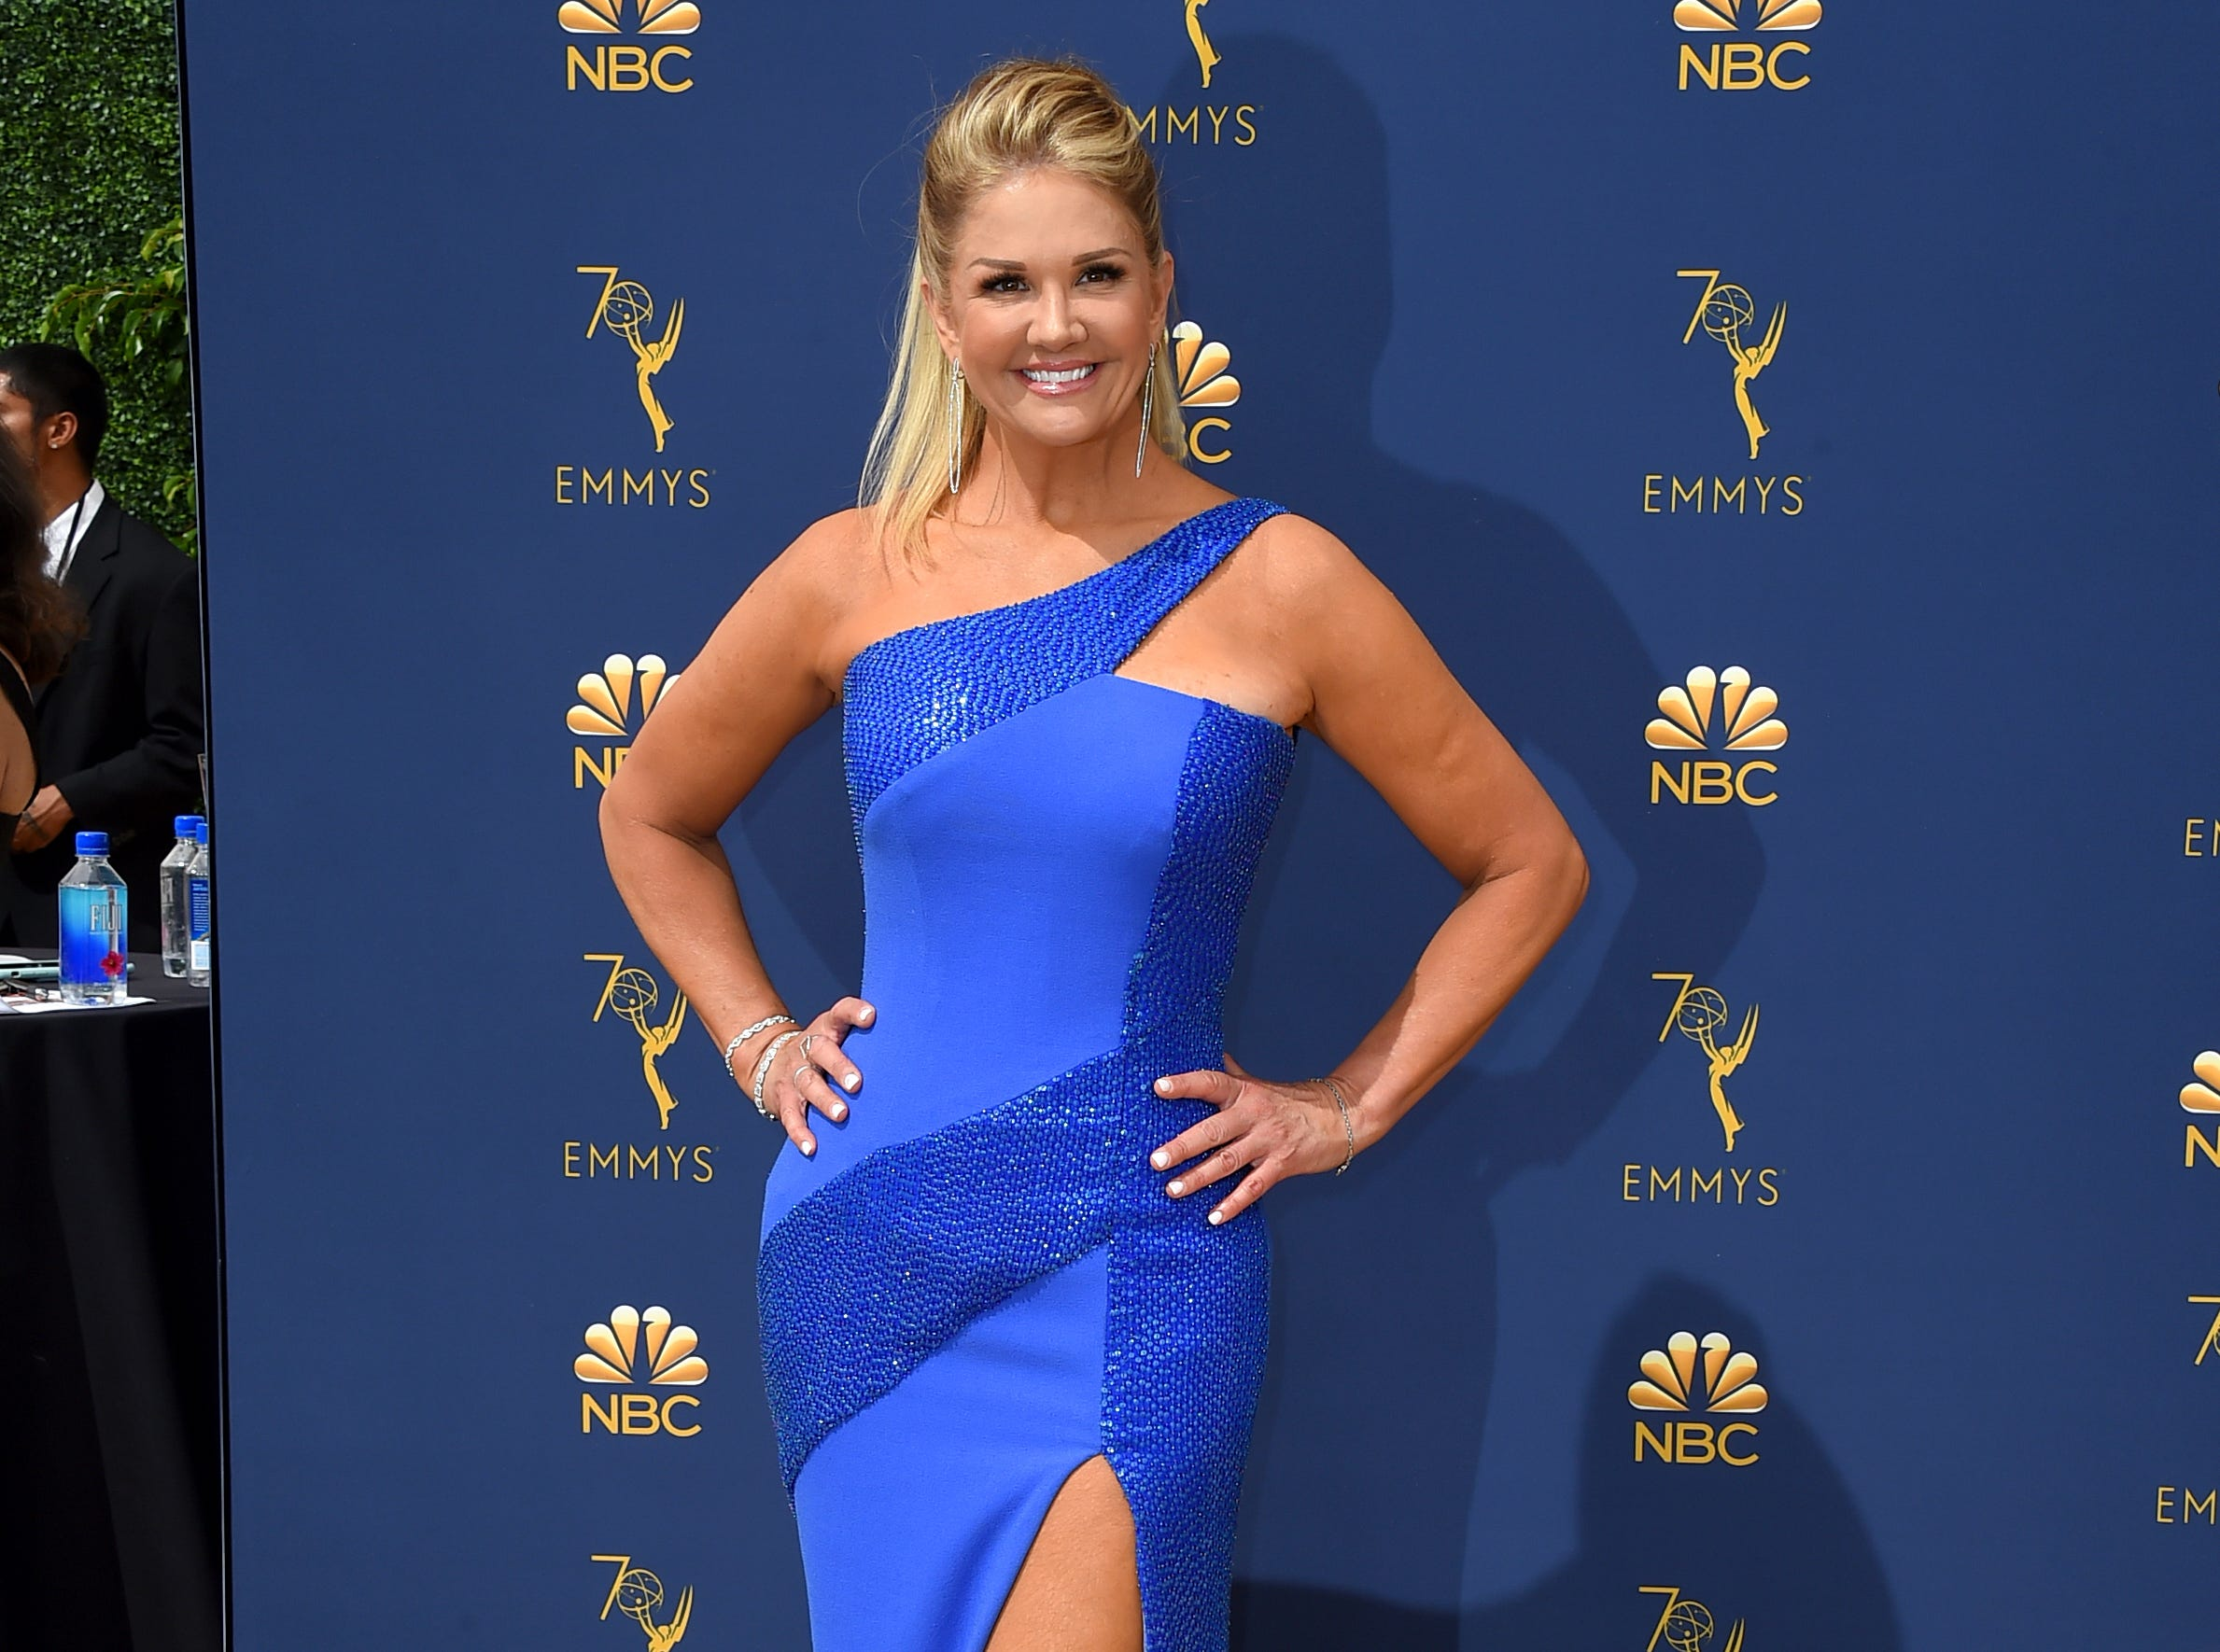 Nancy O'Dell arrives at the 70th Primetime Emmy Awards on Monday, Sept. 17, 2018, at the Microsoft Theater in Los Angeles.